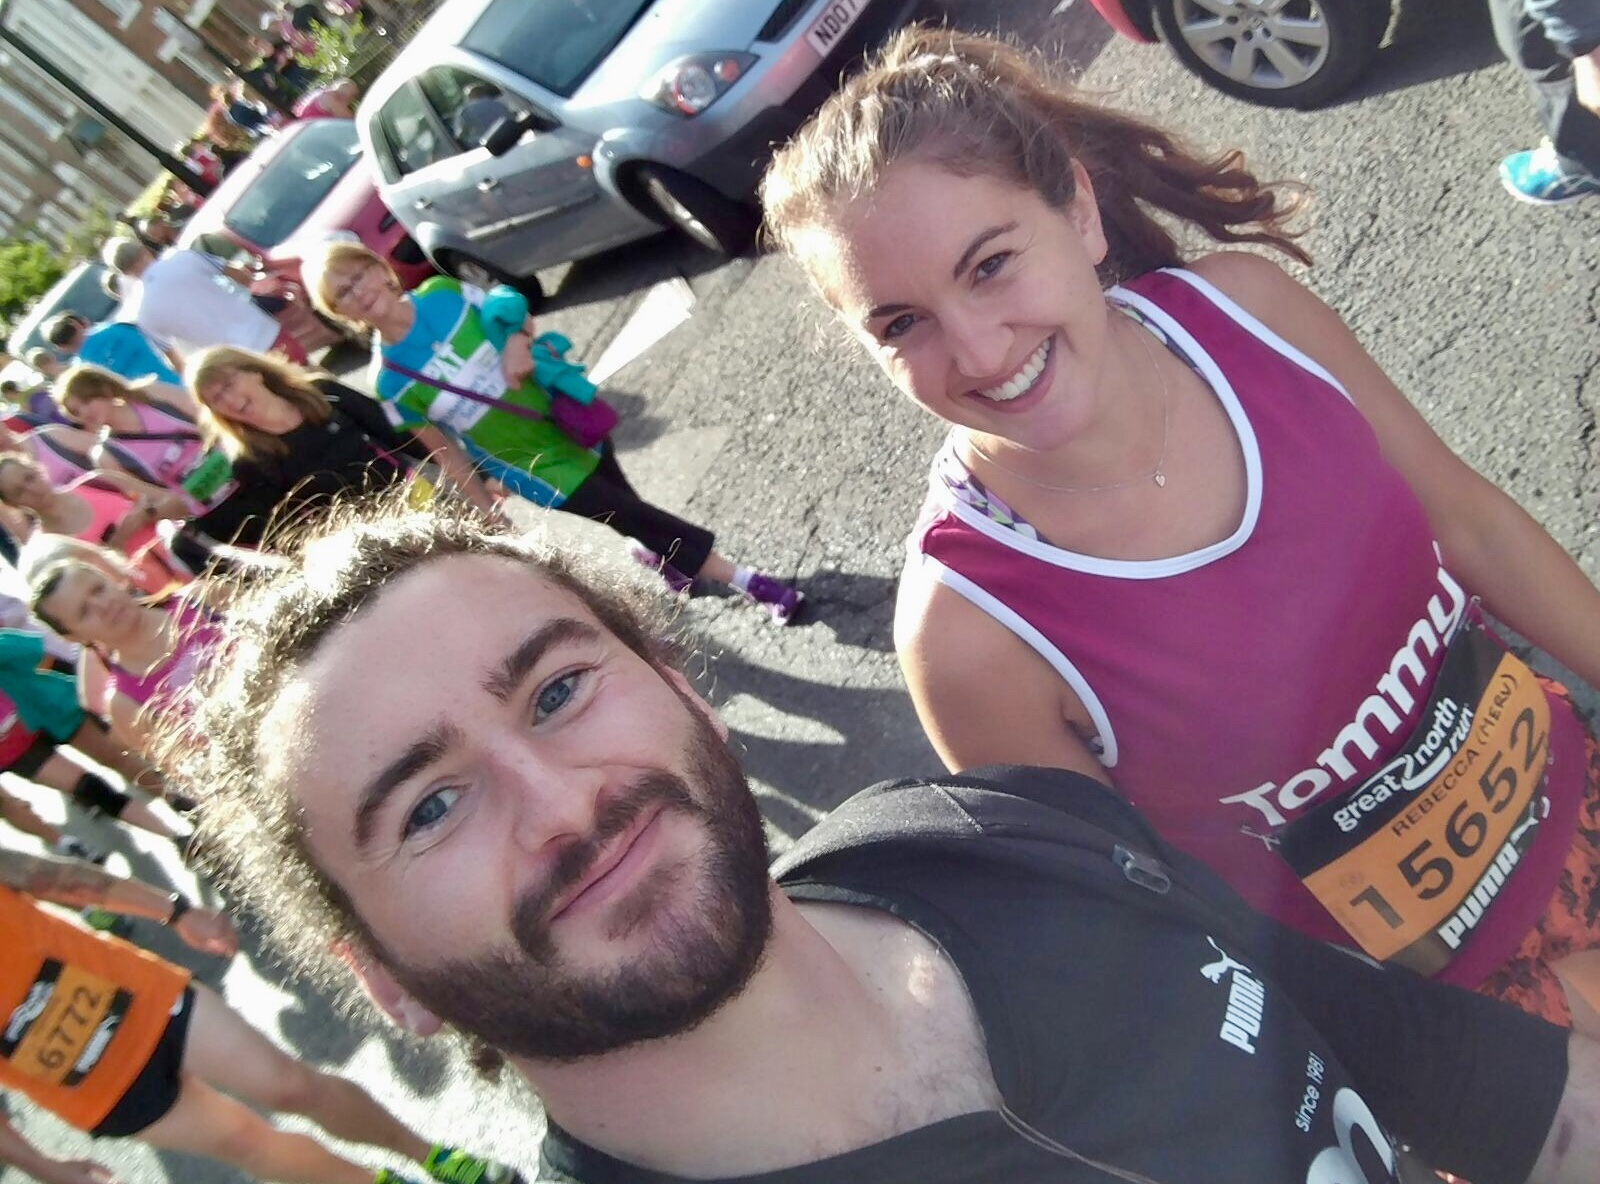 Dan and Rebecca running the Great North Run together. Dan decided to do it in Converse trainers in which he'd barely ran a mile before!! He was clearly mad, but they had a great day. That was the last day Rebecca saw him, so, as you can Imagine, the photo means a lot to her.